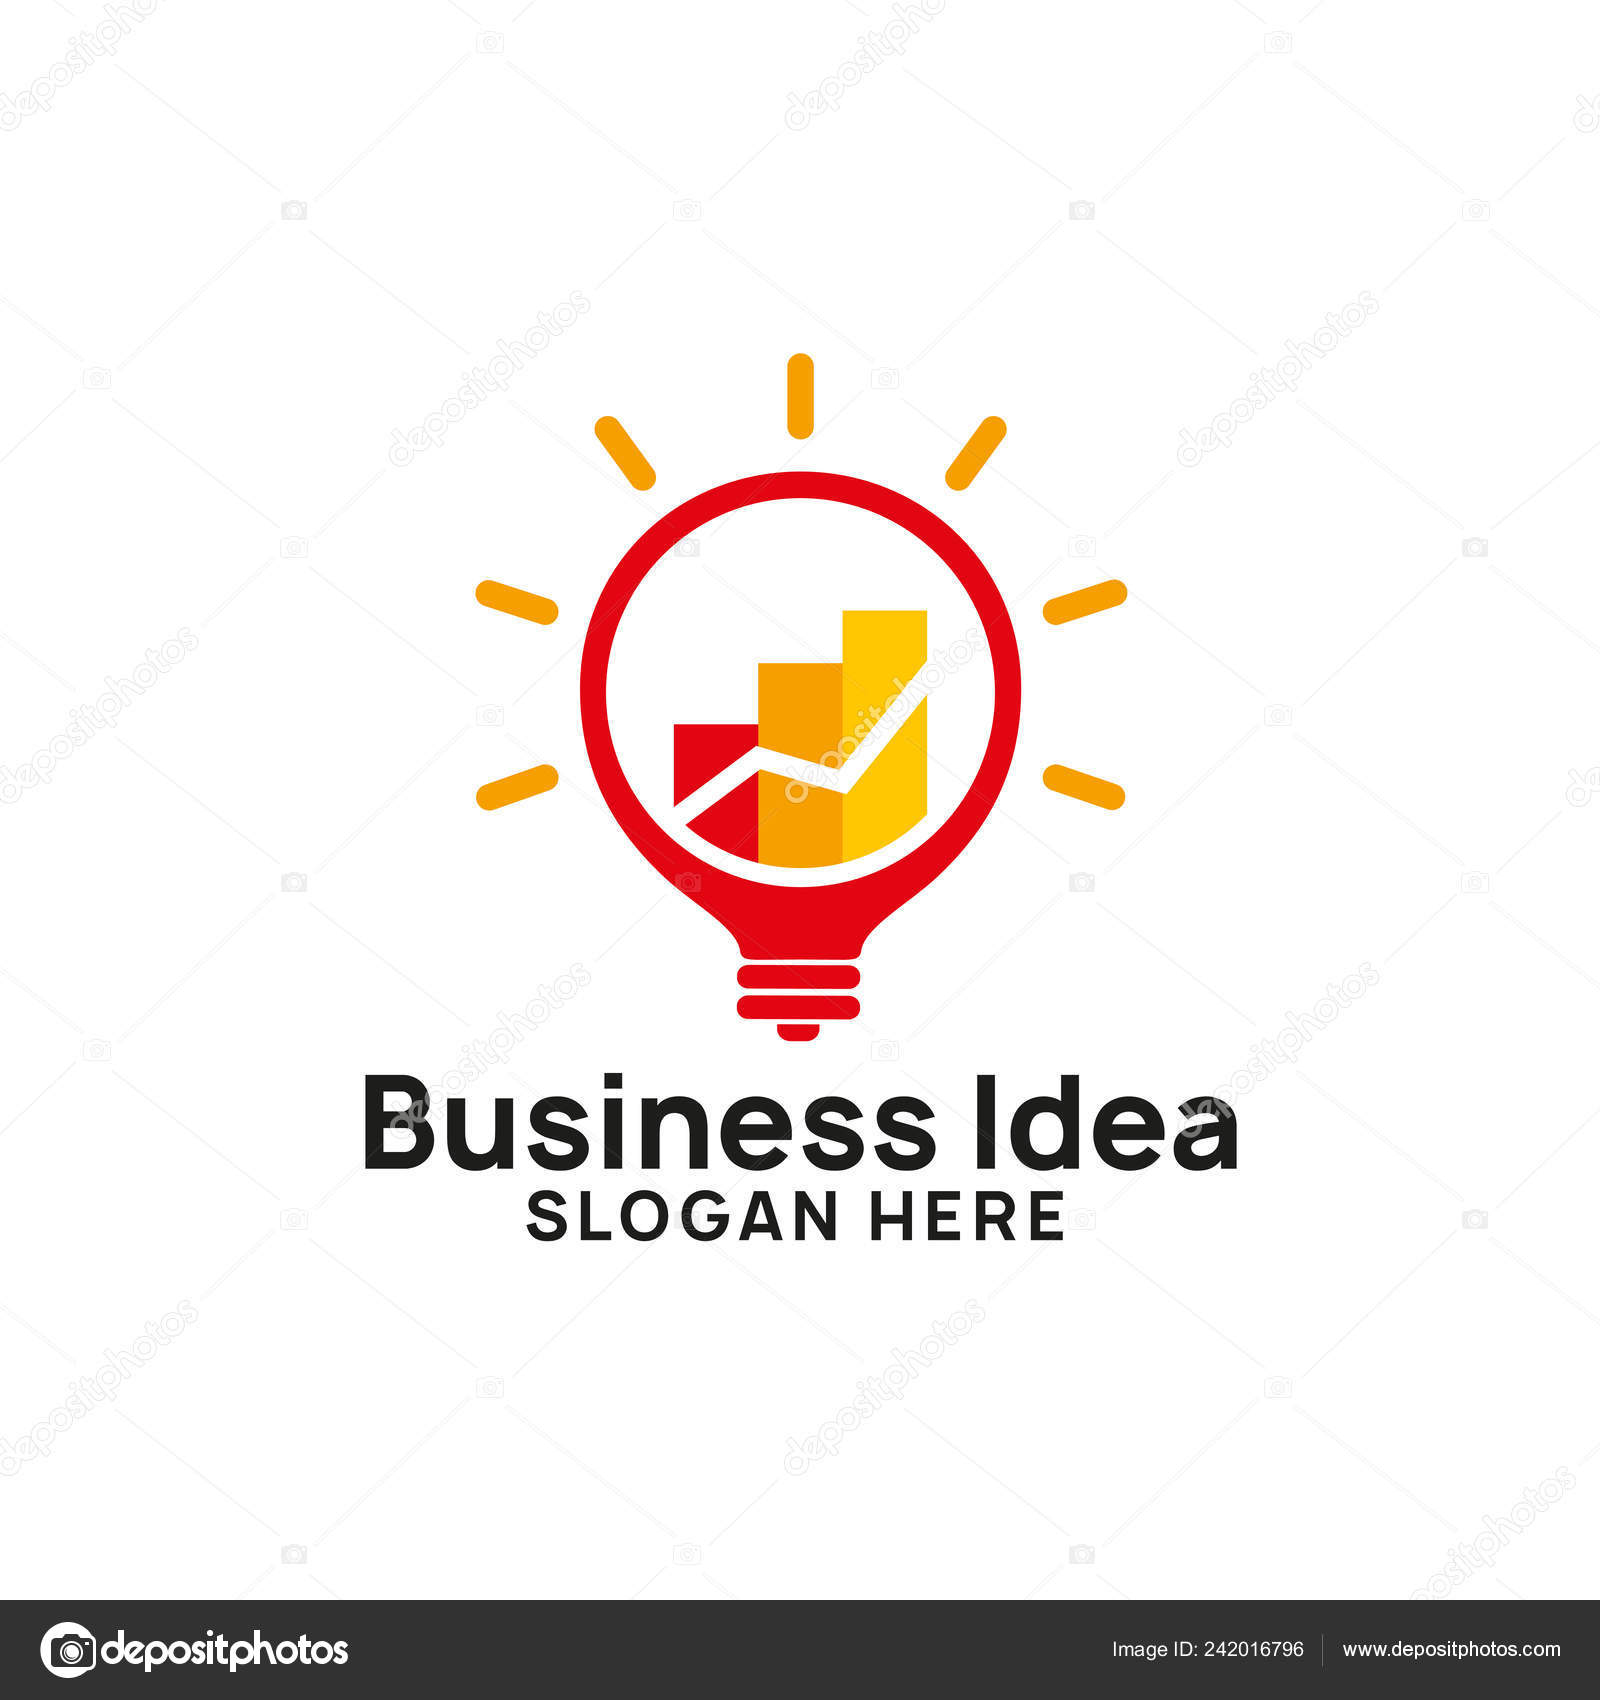 Creative logo design ideas | Business Creative Idea Logo ...